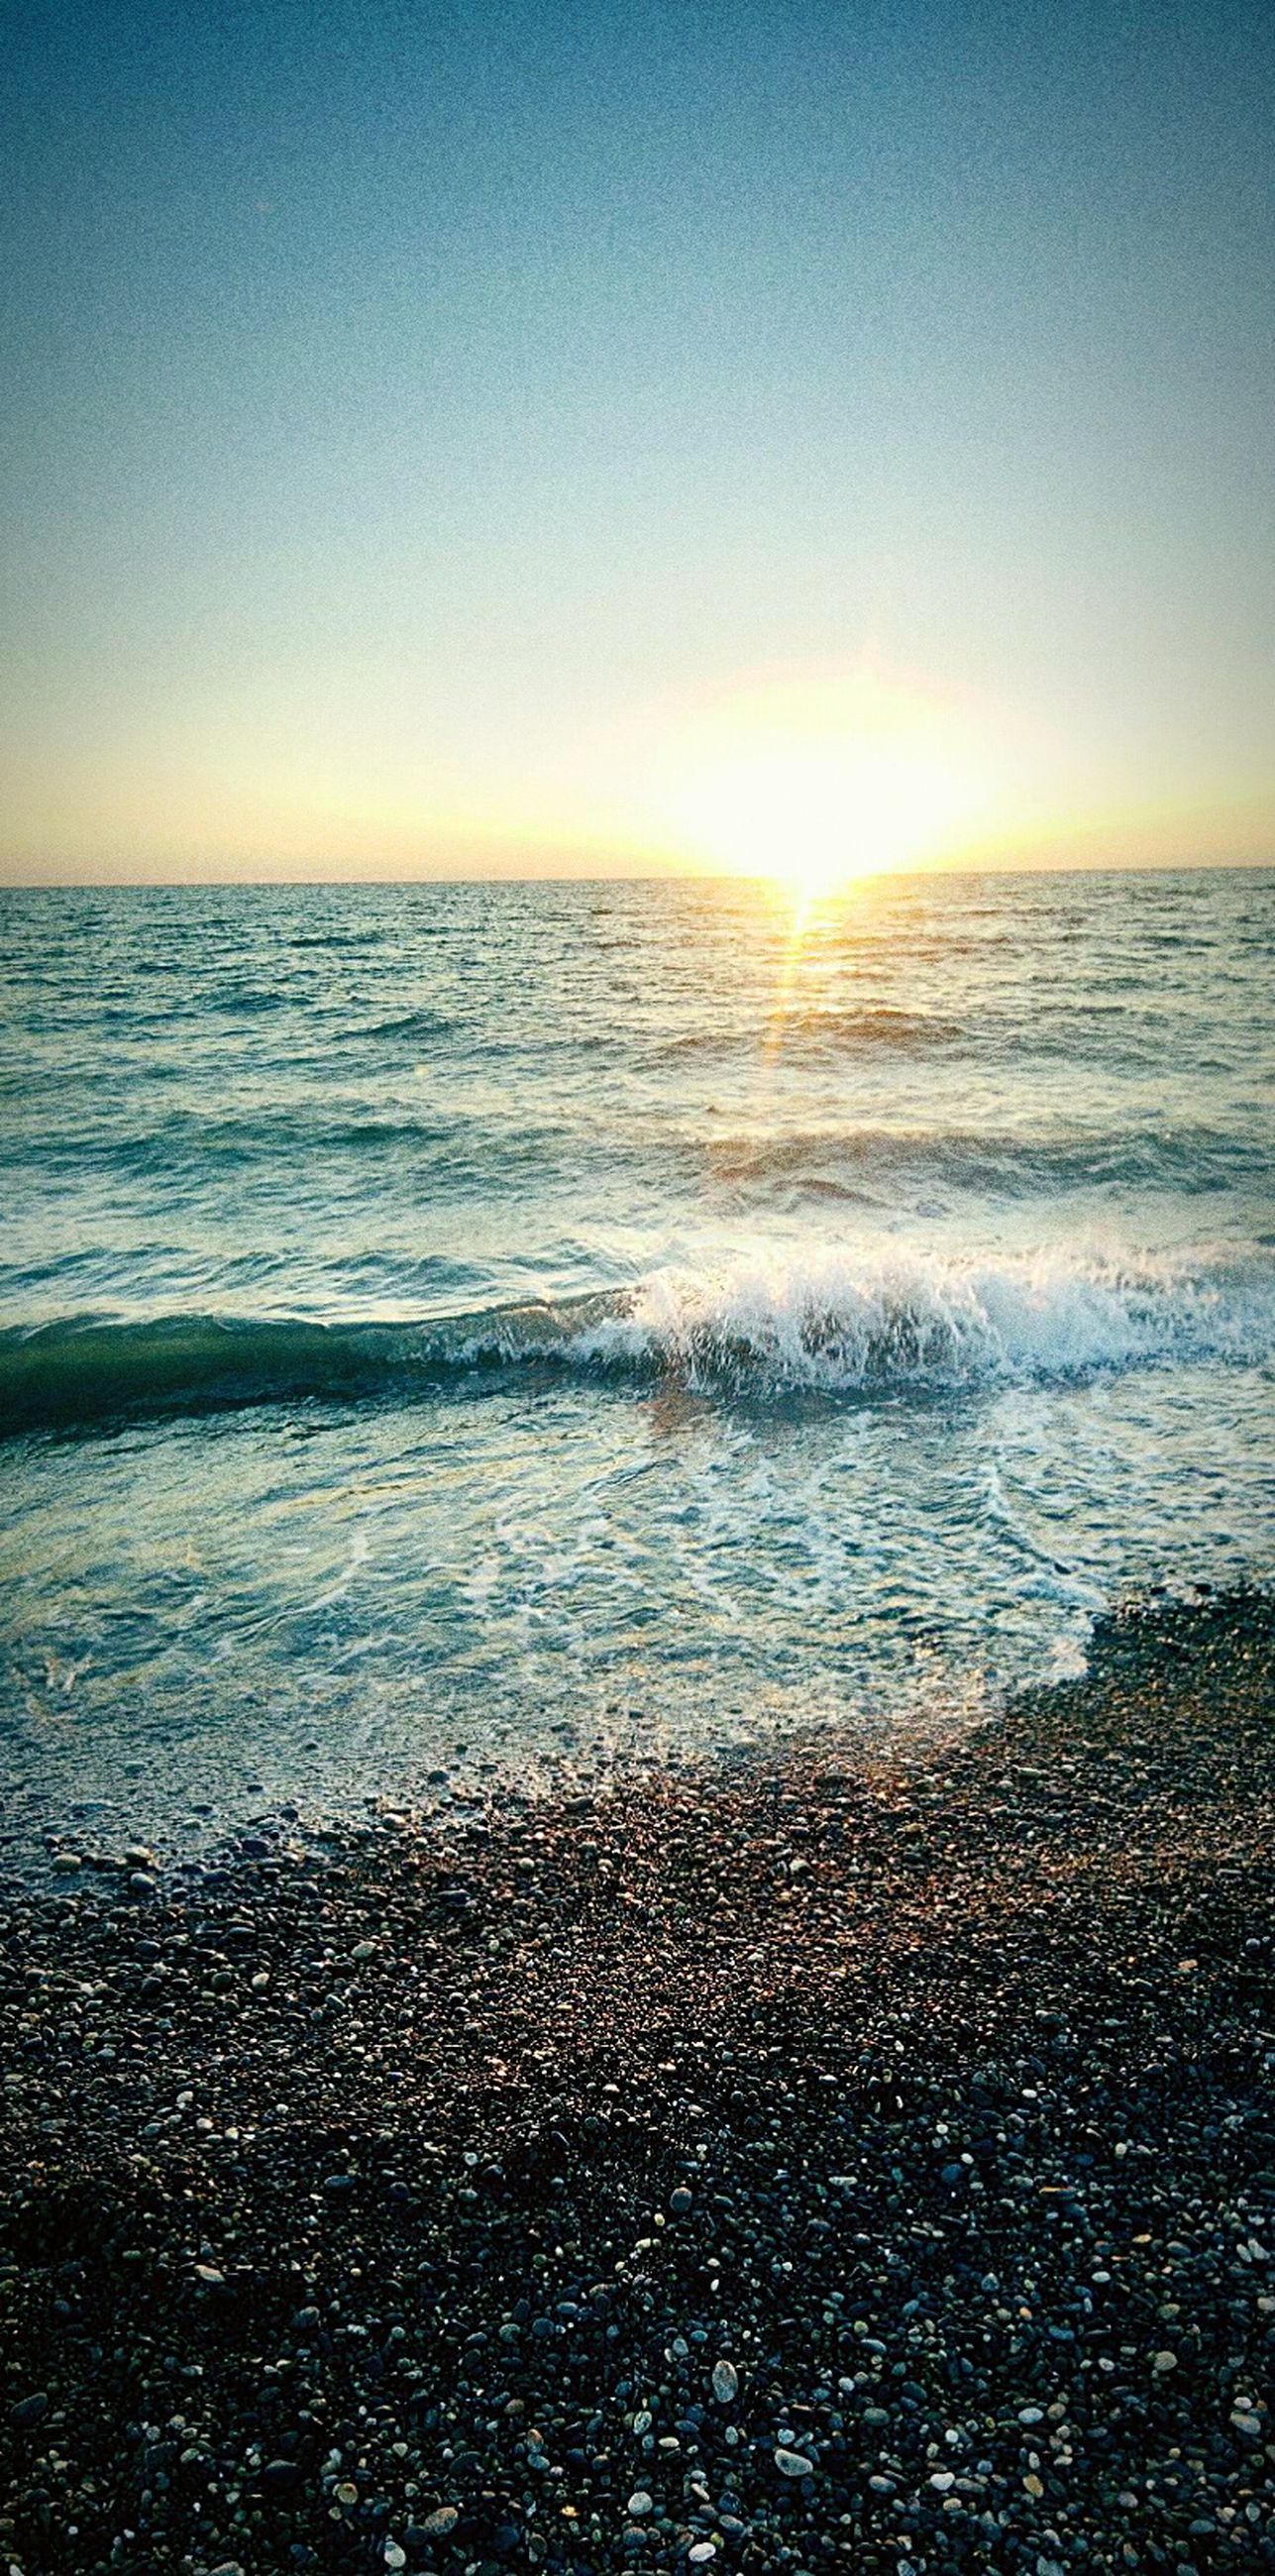 sea, horizon over water, water, beach, scenics, tranquil scene, shore, beauty in nature, tranquility, wave, sunset, nature, sky, clear sky, idyllic, sand, surf, seascape, copy space, coastline